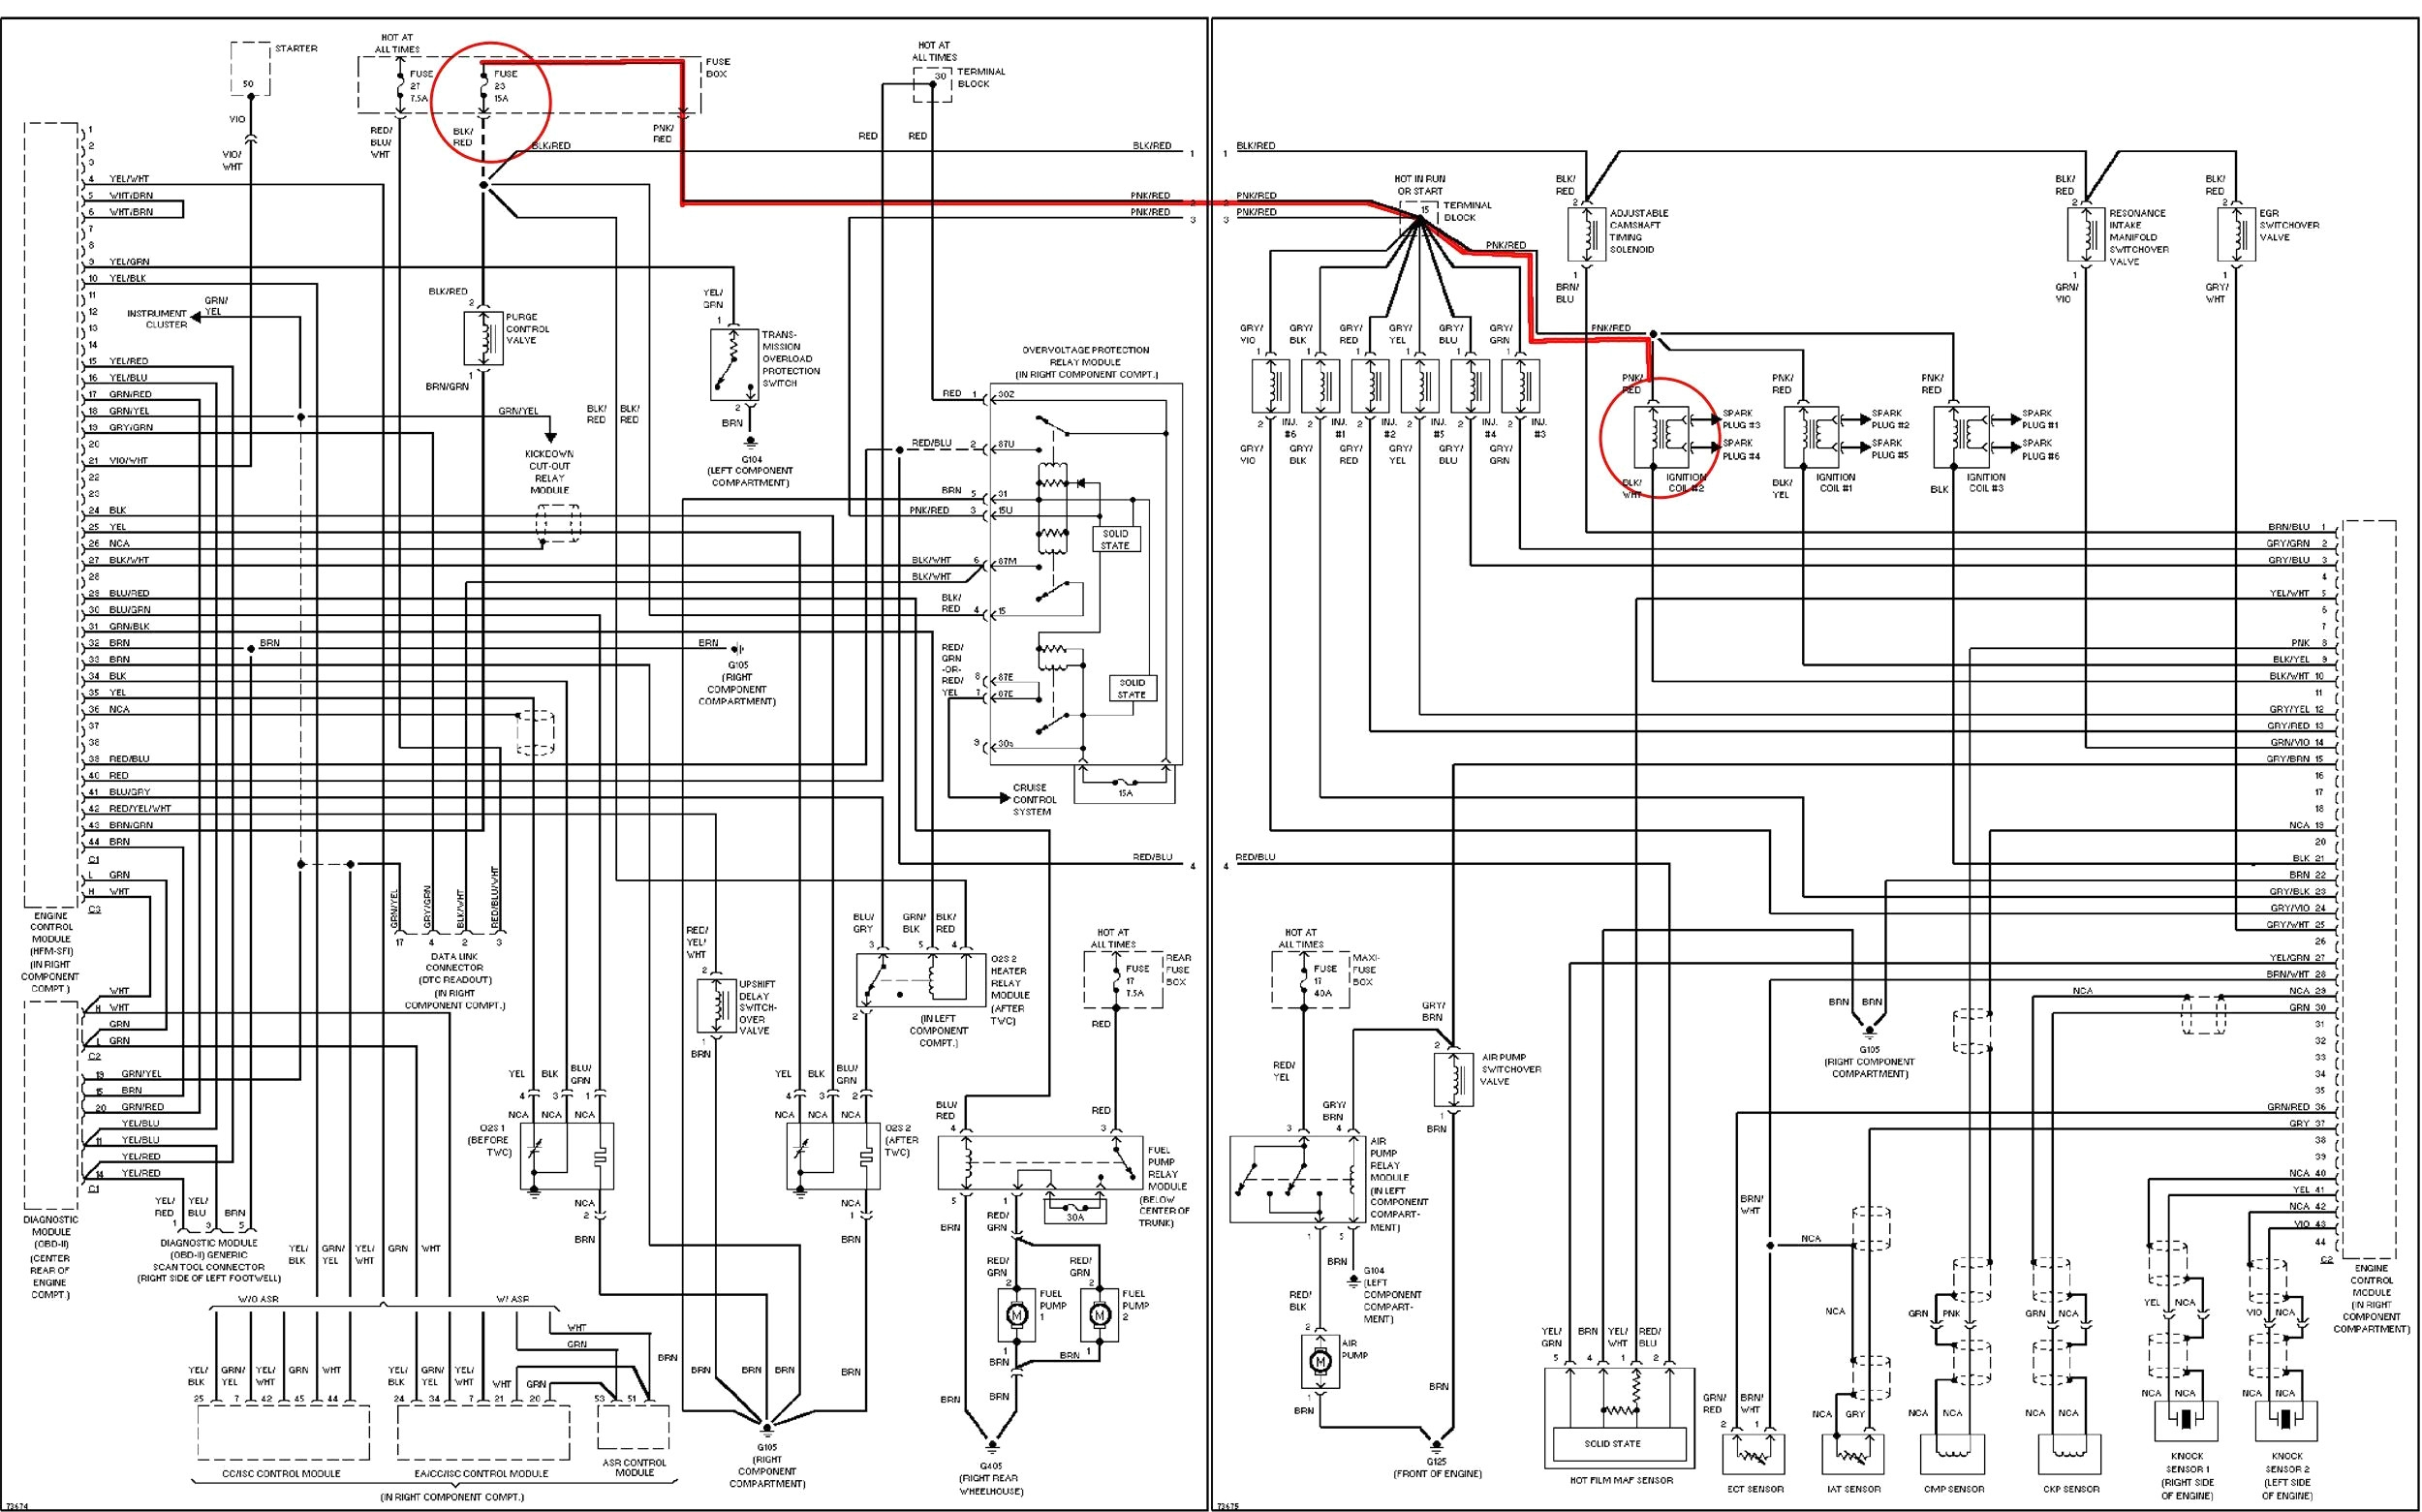 sprinter wiring diagrams for alternators mercedes sprinter wiring diagram pdf | free wiring diagram wiring diagrams for wisconsin #12